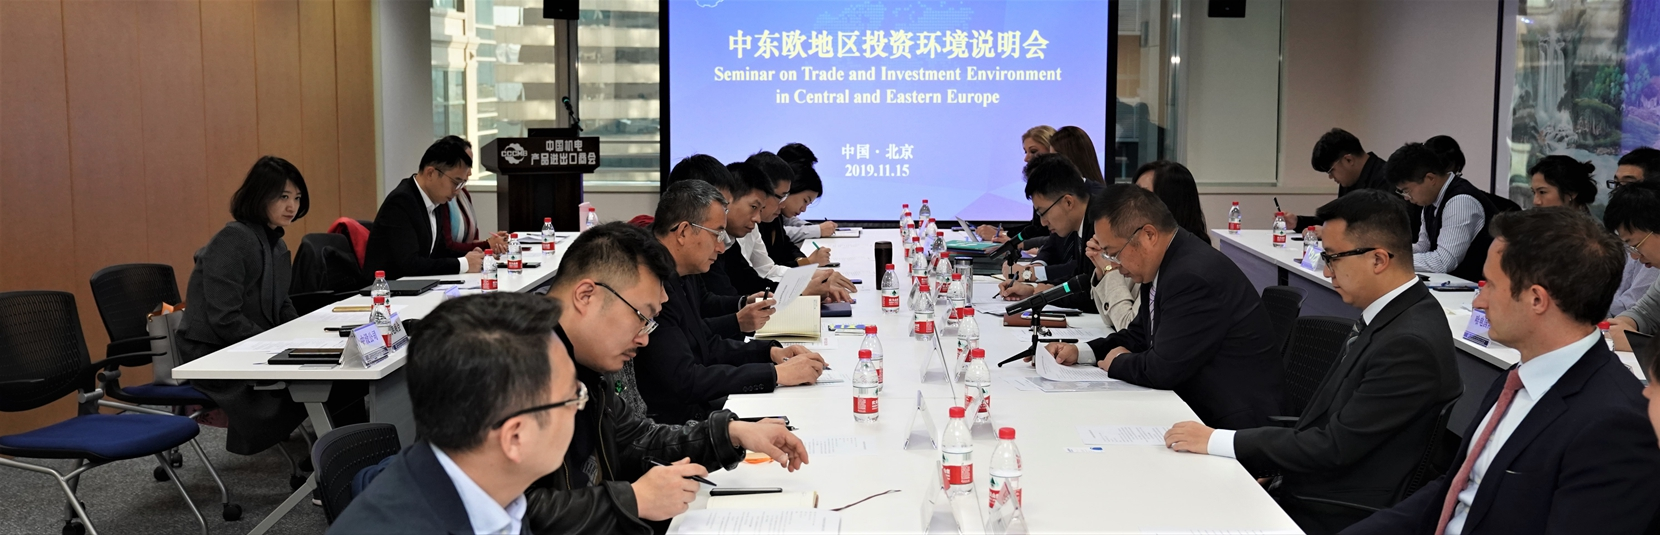 Seminar on Trade and Investment Environment in Central and Eastern Europe.